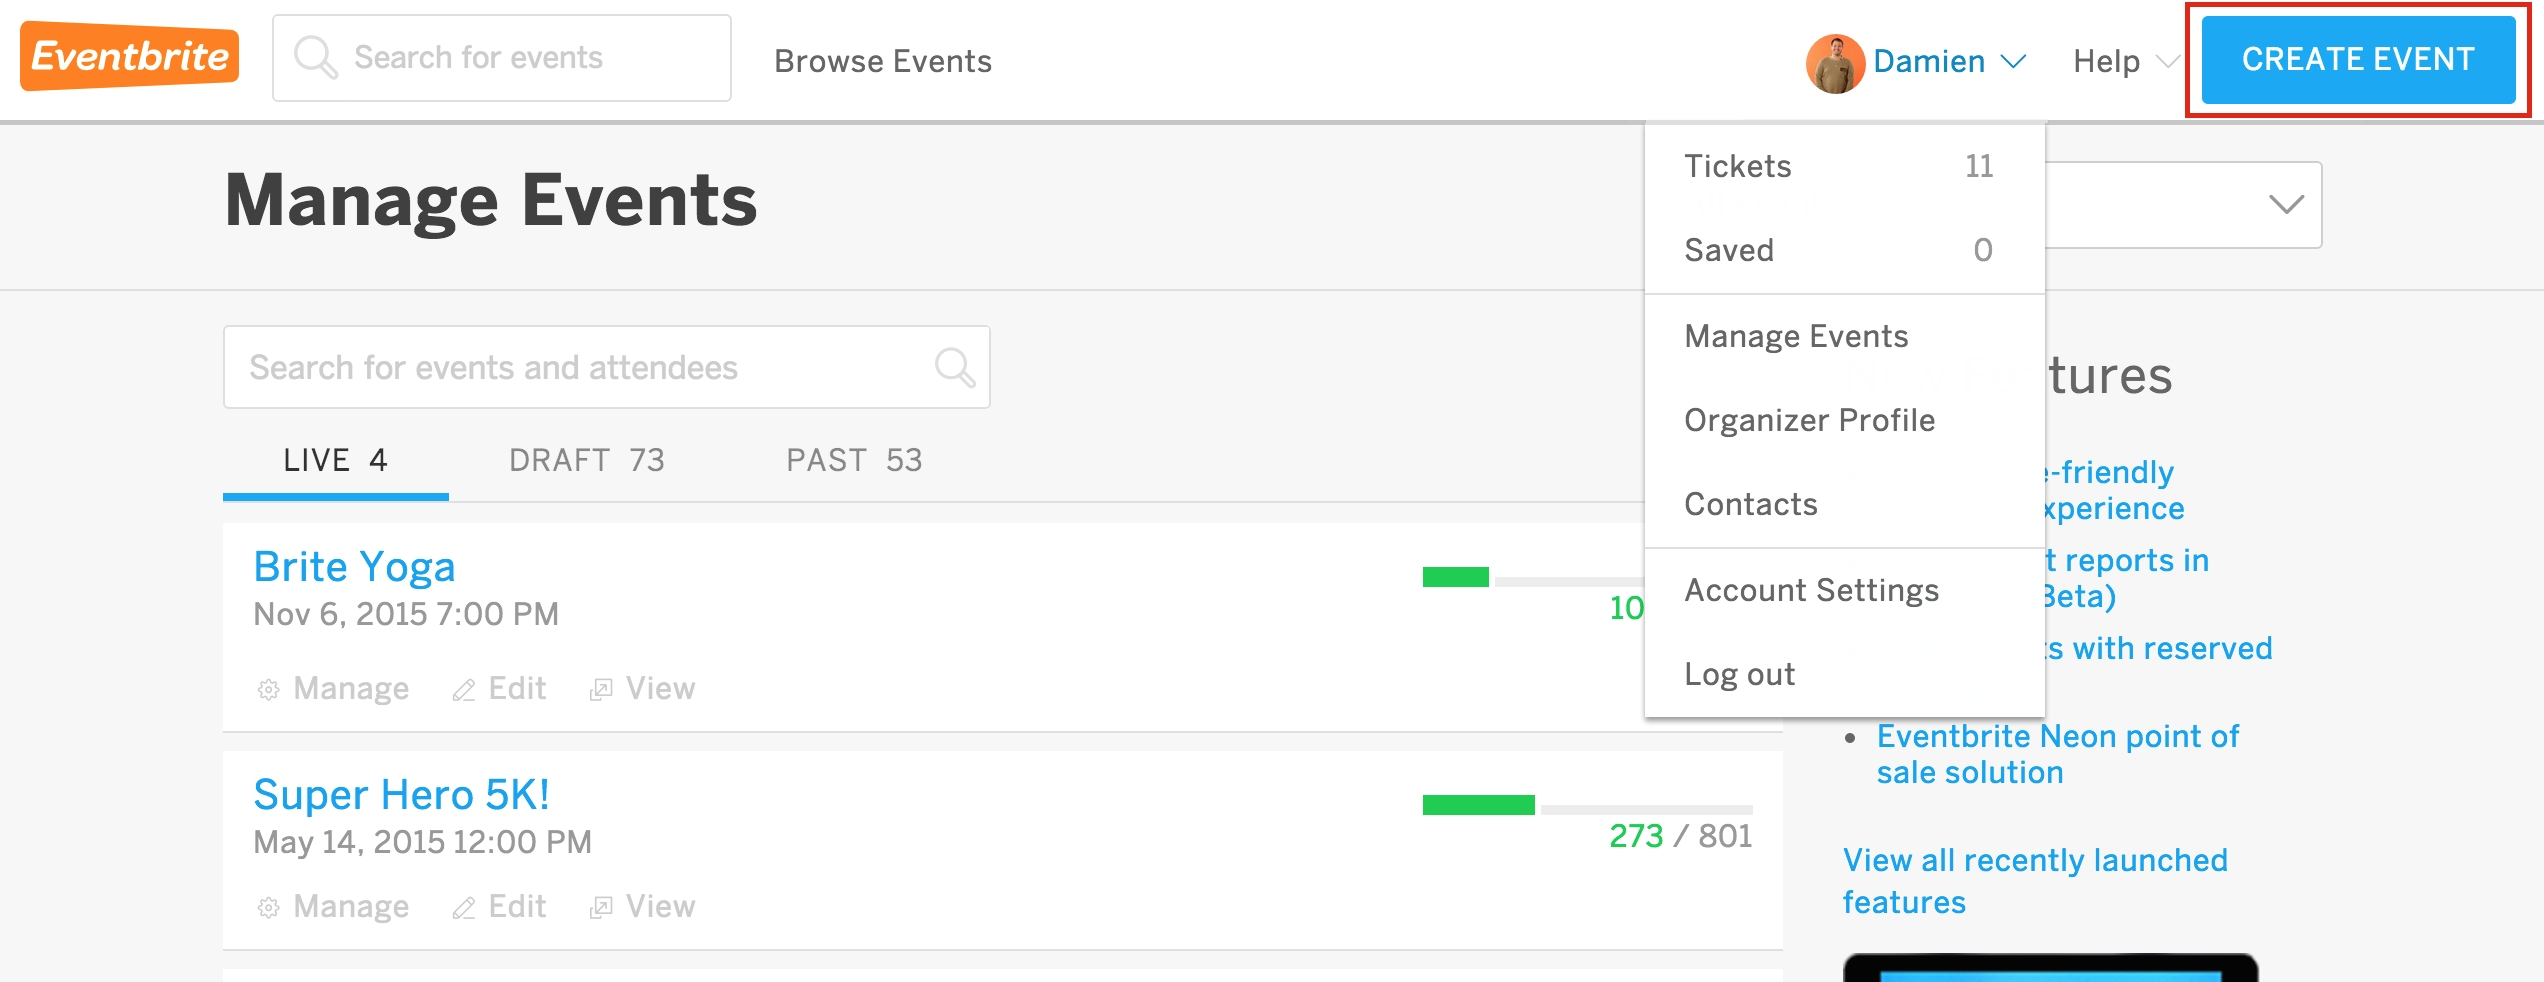 How To Create And Edit Ticket Types | Eventbrite Help Center  Example Table For 1 Month 1 Week Event Process